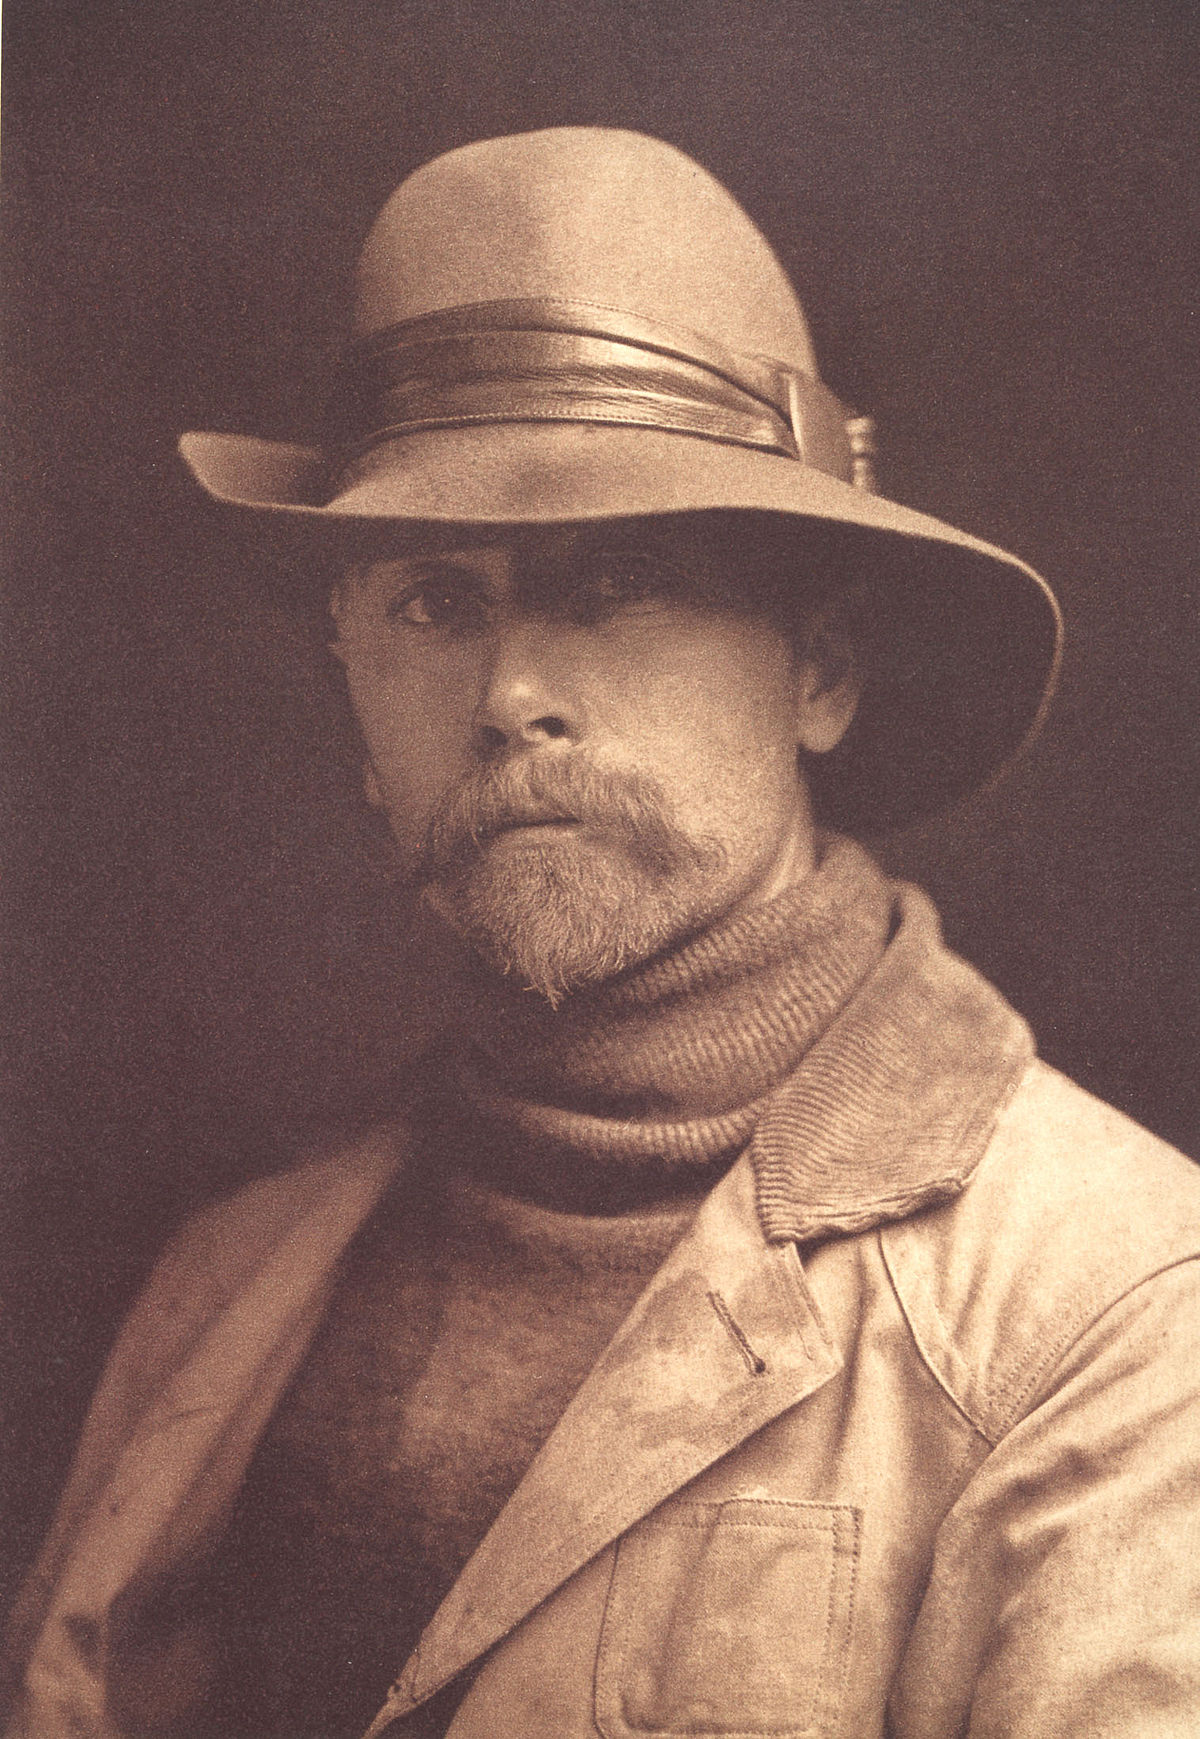 Self-portrait of Edward S. Curtis made in 1906